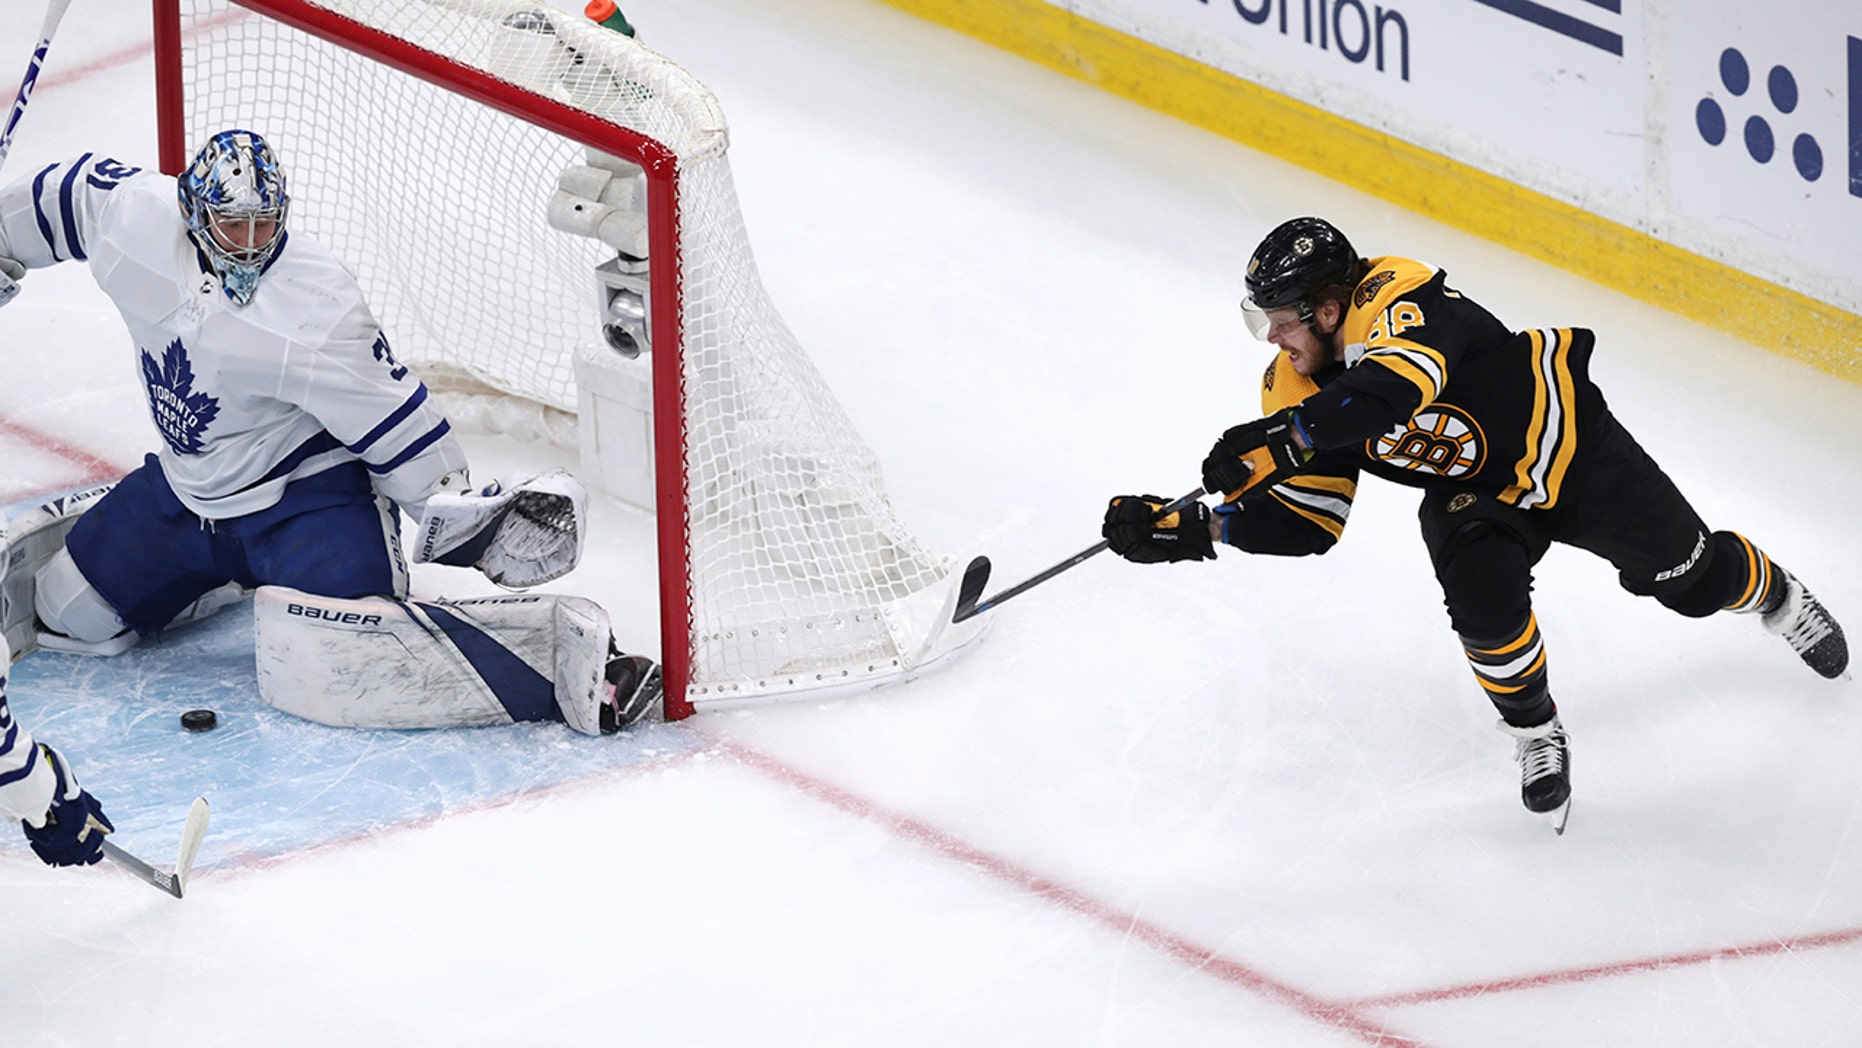 Boston Bruins right wing David Pastrnak, right, fires the puck in front of Toronto Maple Leafs goaltender Frederik Andersen (31) during the first period of Game 7 of an NHL hockey first-round playoff series, Tuesday, April 23, 2019, in Boston. (AP Photo/Charles Krupa)